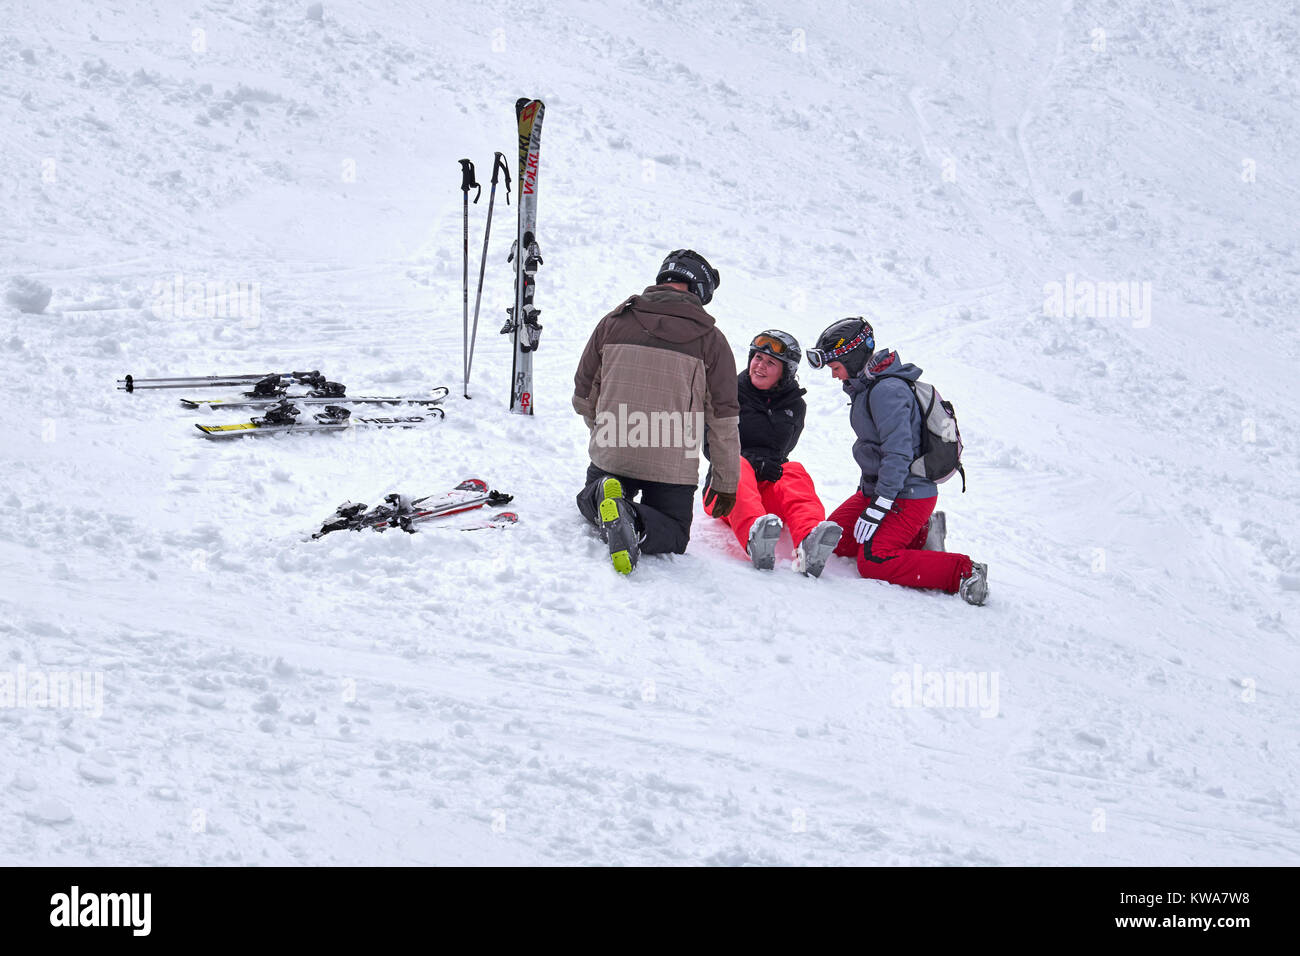 WINTERBERG, GERMANY - FEBRUARY 16, 2017: Woman sitting on a ski slope with injured leg being taken care of at Ski - Stock Image